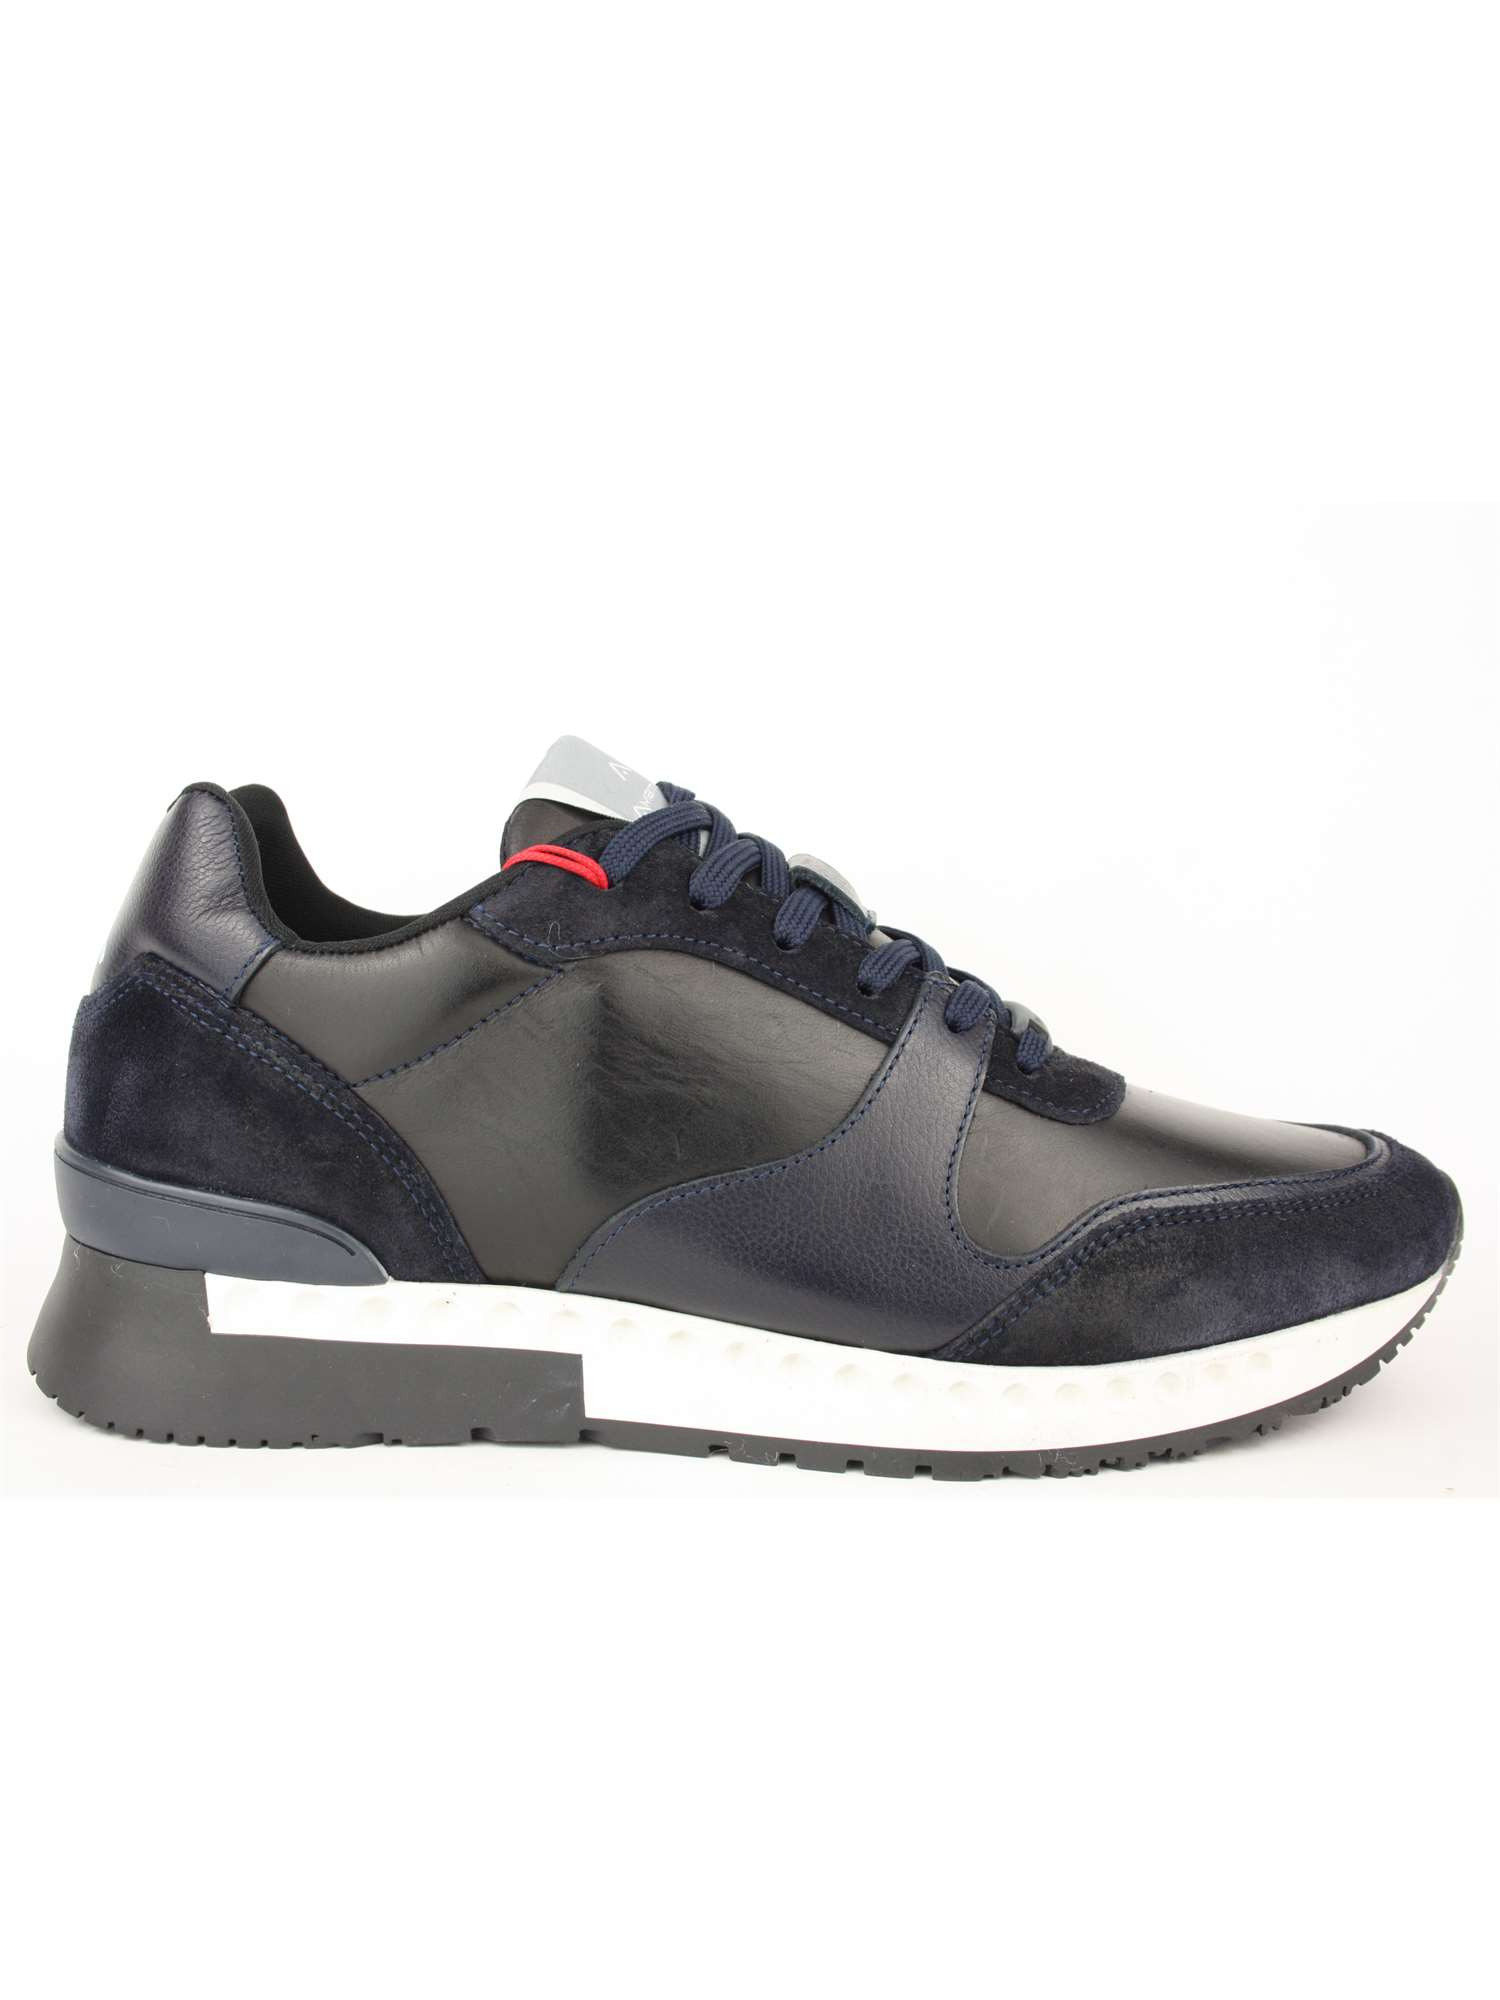 Ambitious Shoes Sneakers Blu | Sneakers Uomo Pelle+cam